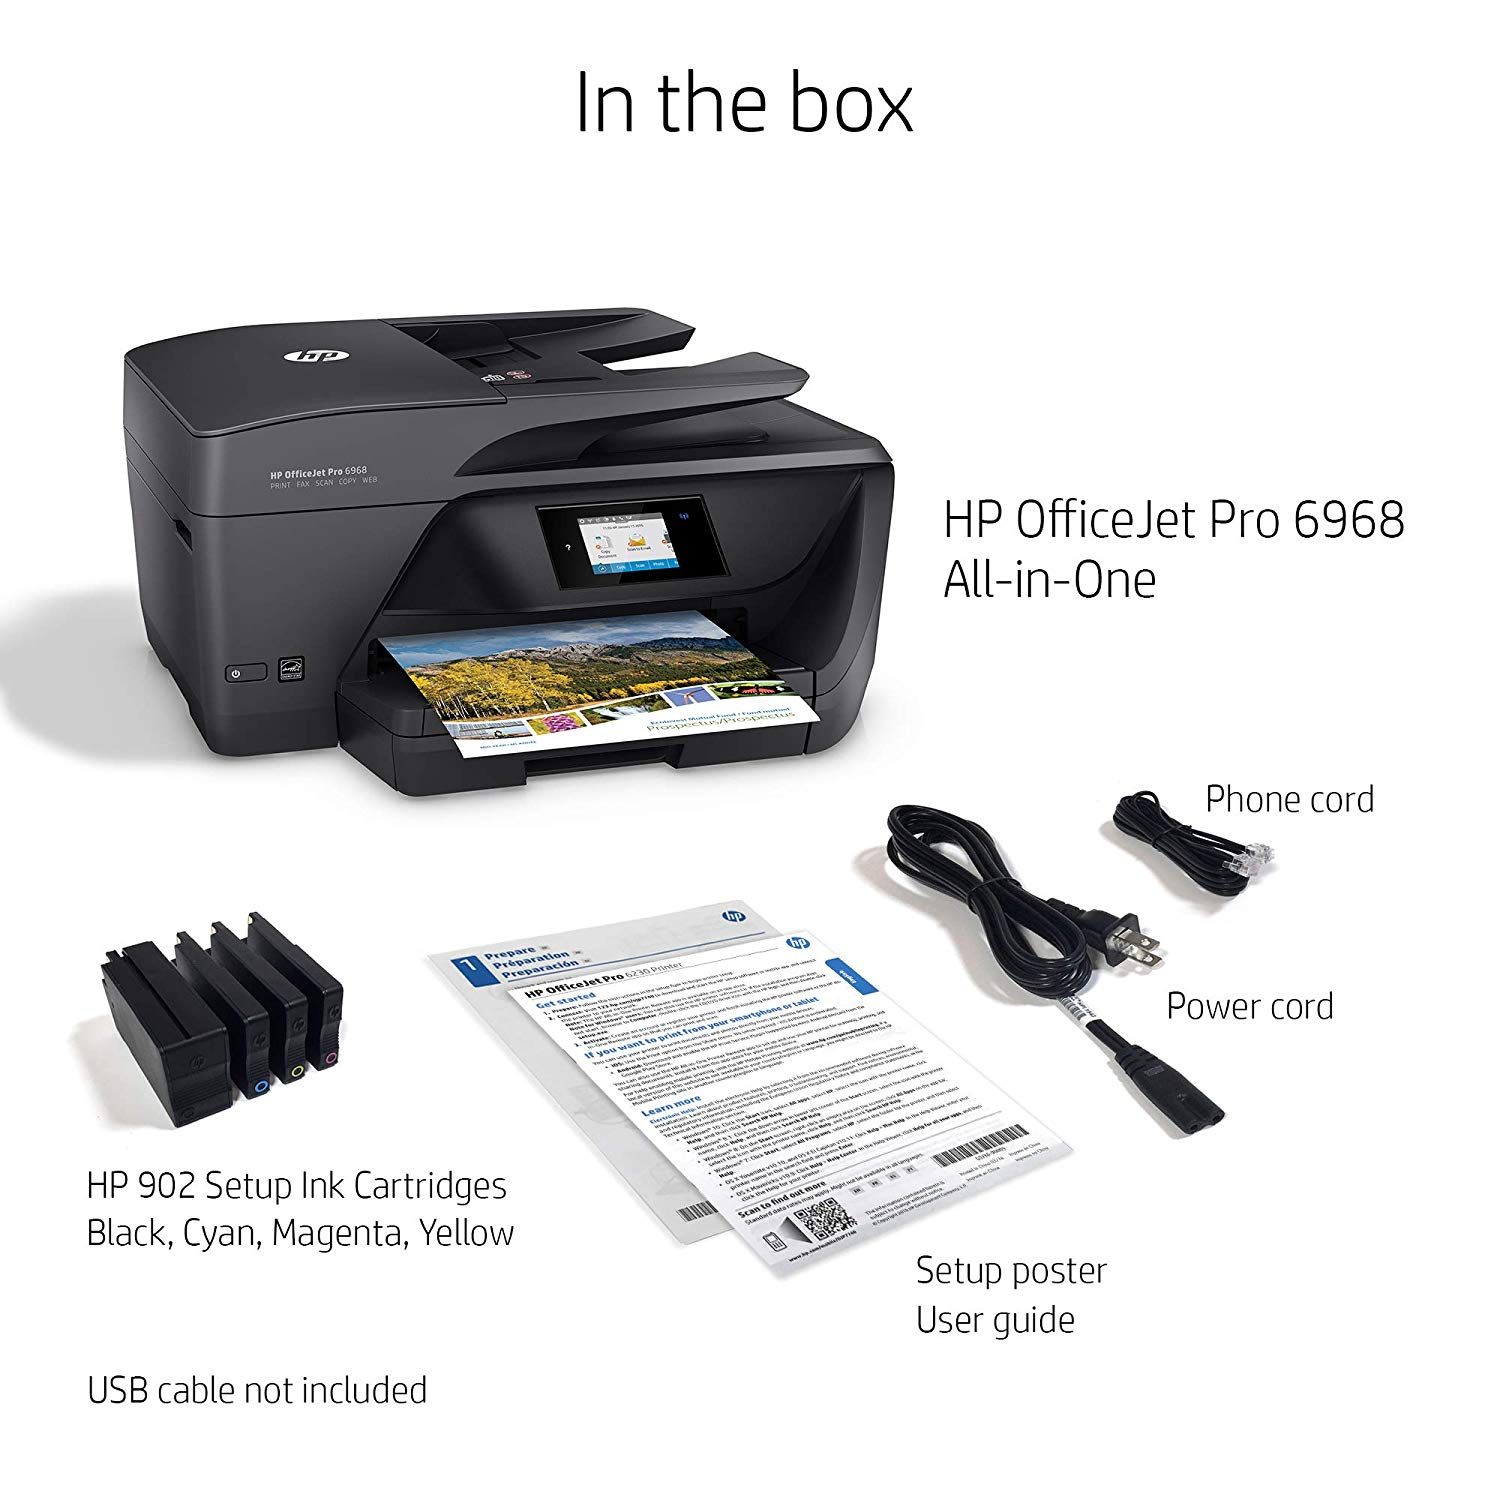 HP OFFICEJET PRO 6968 DRIVER FOR MAC DOWNLOAD